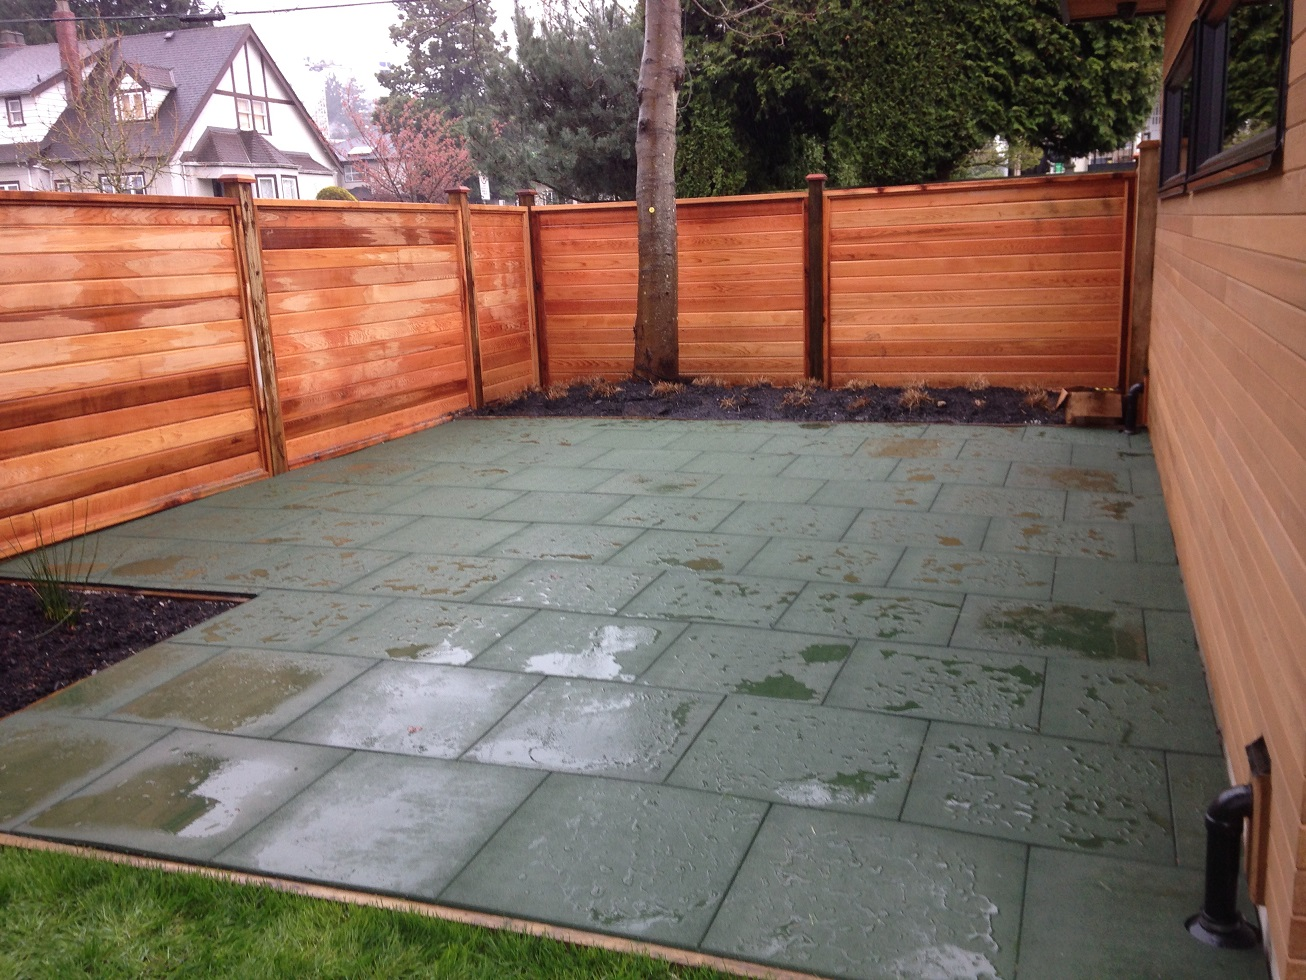 Plain Recycled Rubber Flooring Outdoor Covering Surfaces Play In